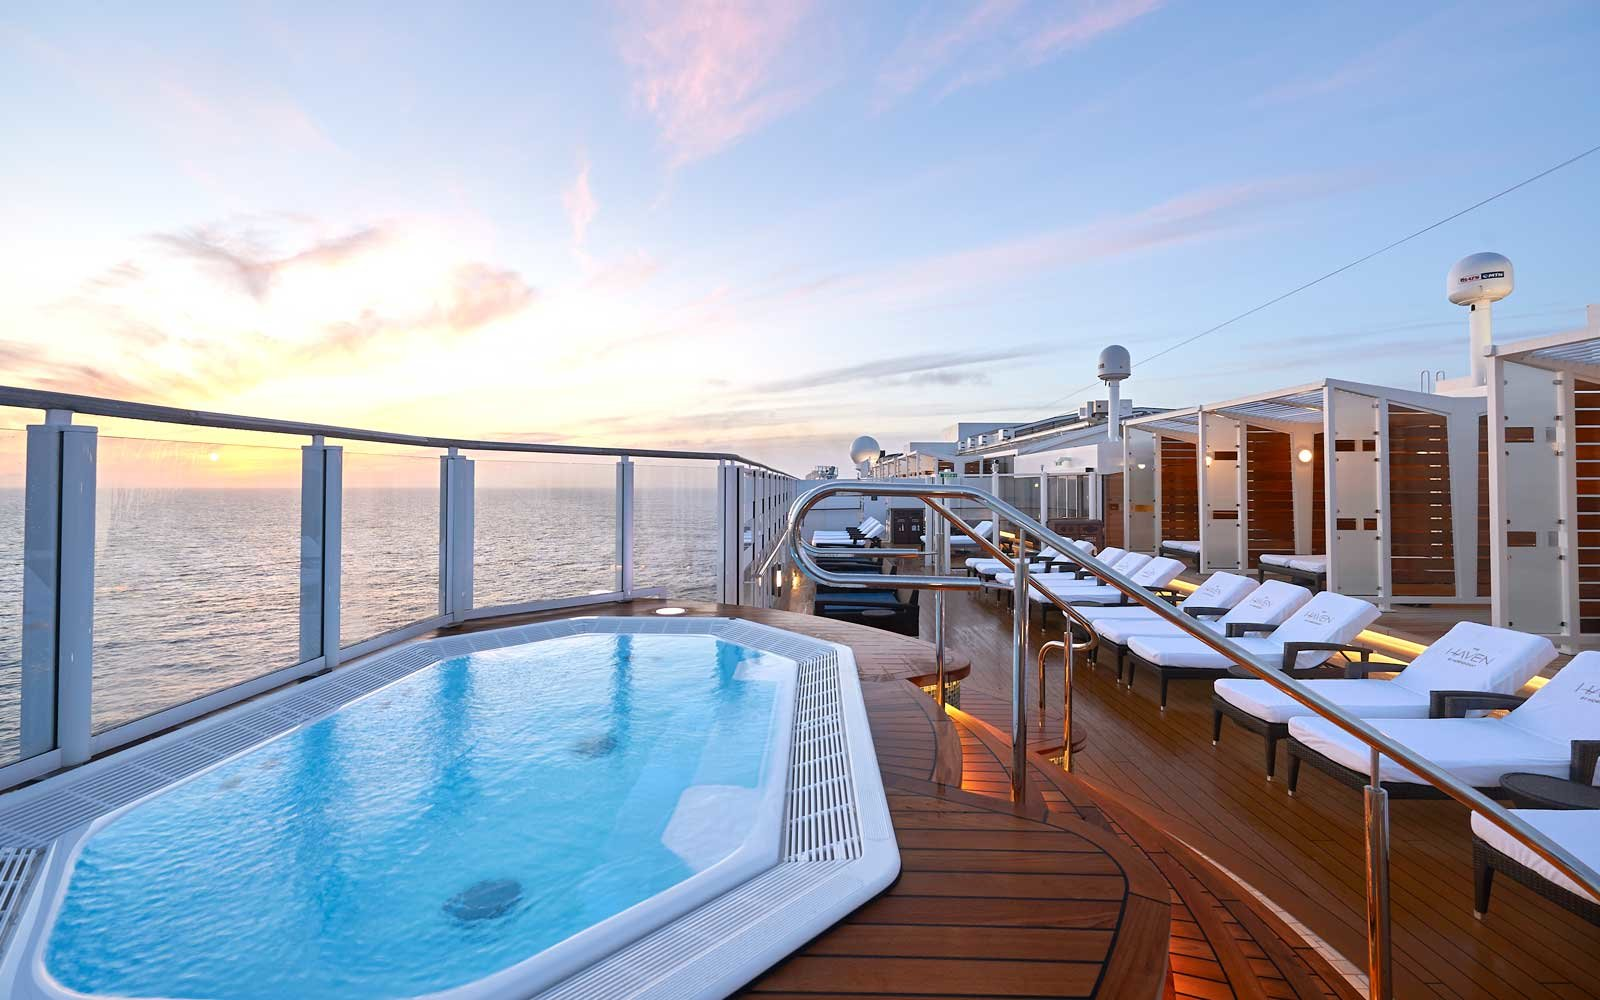 Sundeck on board the Norwegian Bliss ship